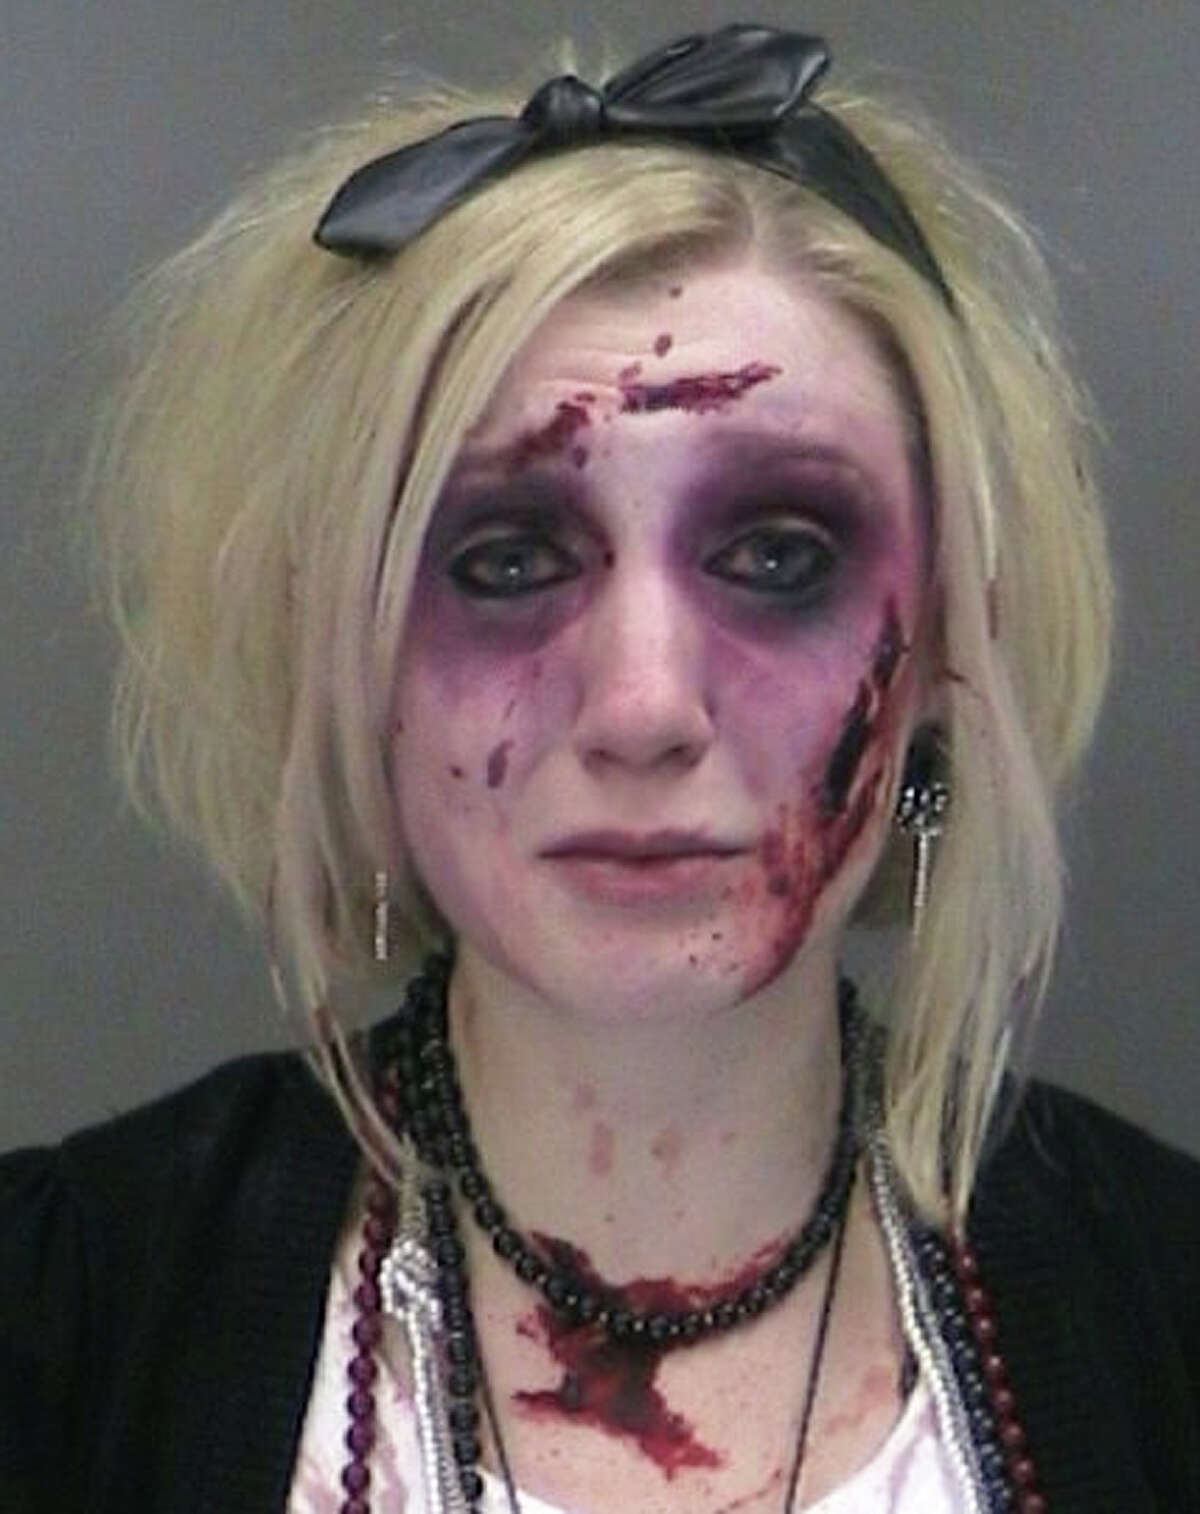 Catherine Butler of Rochester, N.Y. is seen in a booking photo provided by the Gates, N.Y., Police Department. Police say Butler, wearing a zombie costume and makeup, was charged with drunken driving twice within three hours Saturday, Oct. 25, 2014 after attending a Rochester bar's